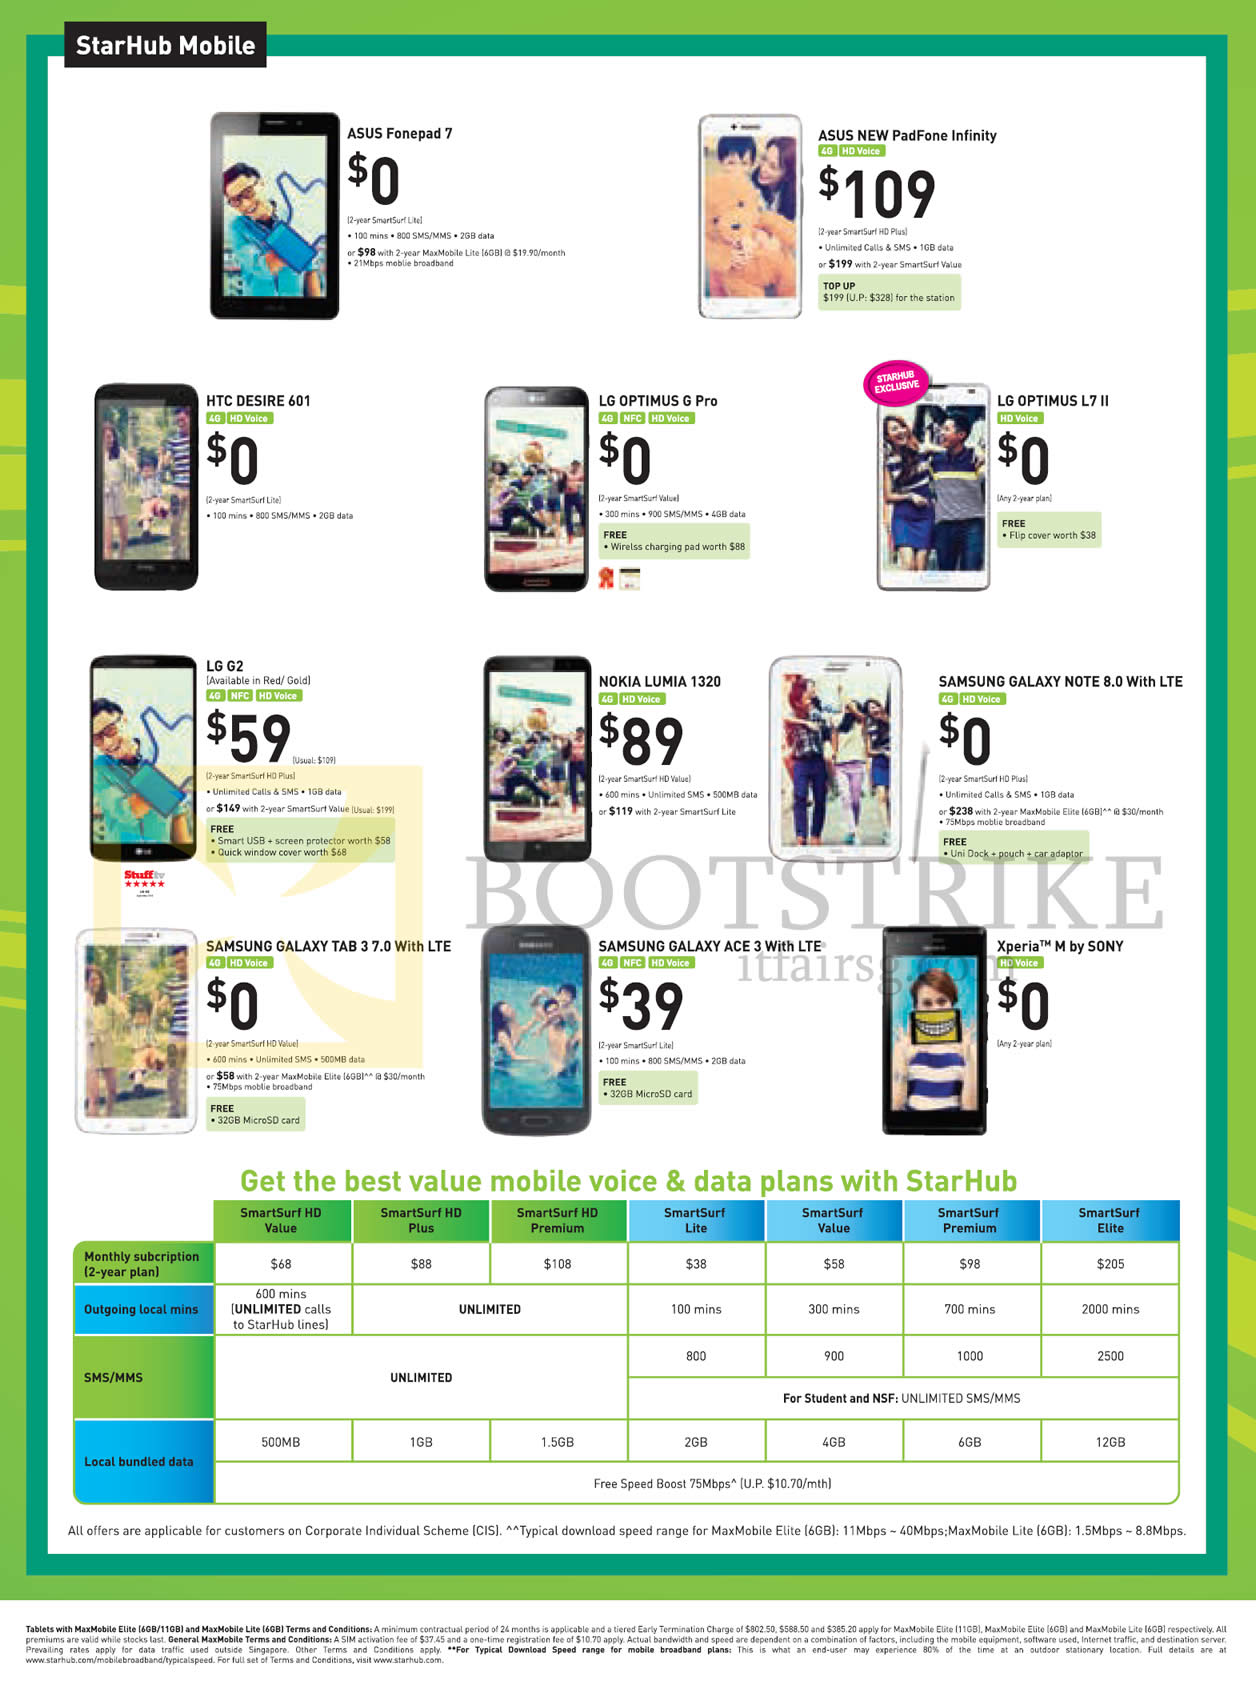 sony xperia price list 2014. it show 2014 price list image brochure of starhub mobile asus fonepad 7, new padfone. « sony xperia